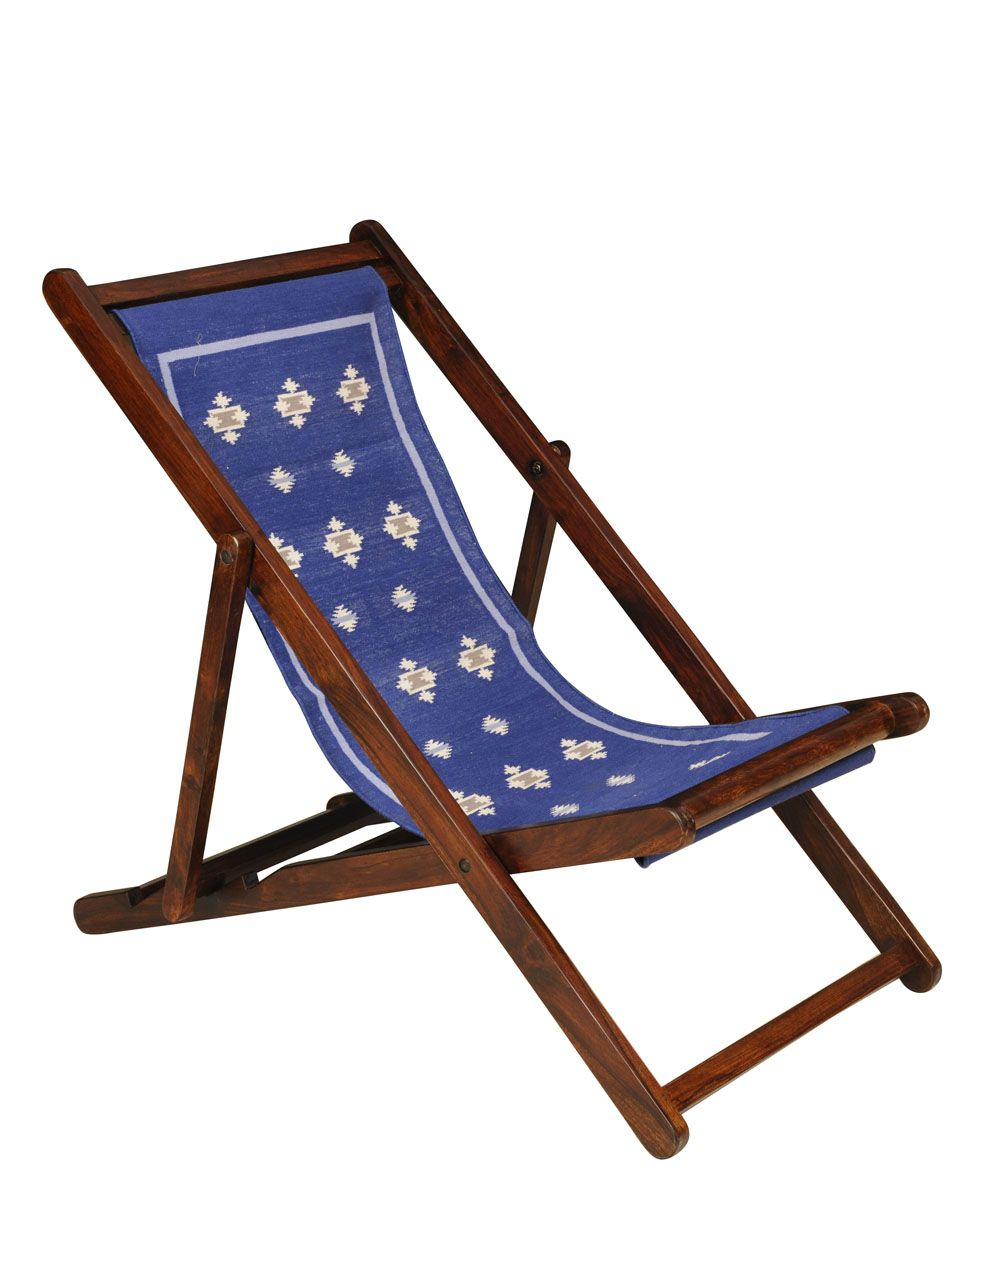 Easy Chair Sheesham Wood 132m x 62cm x 82cm Clean with Dry Cotton